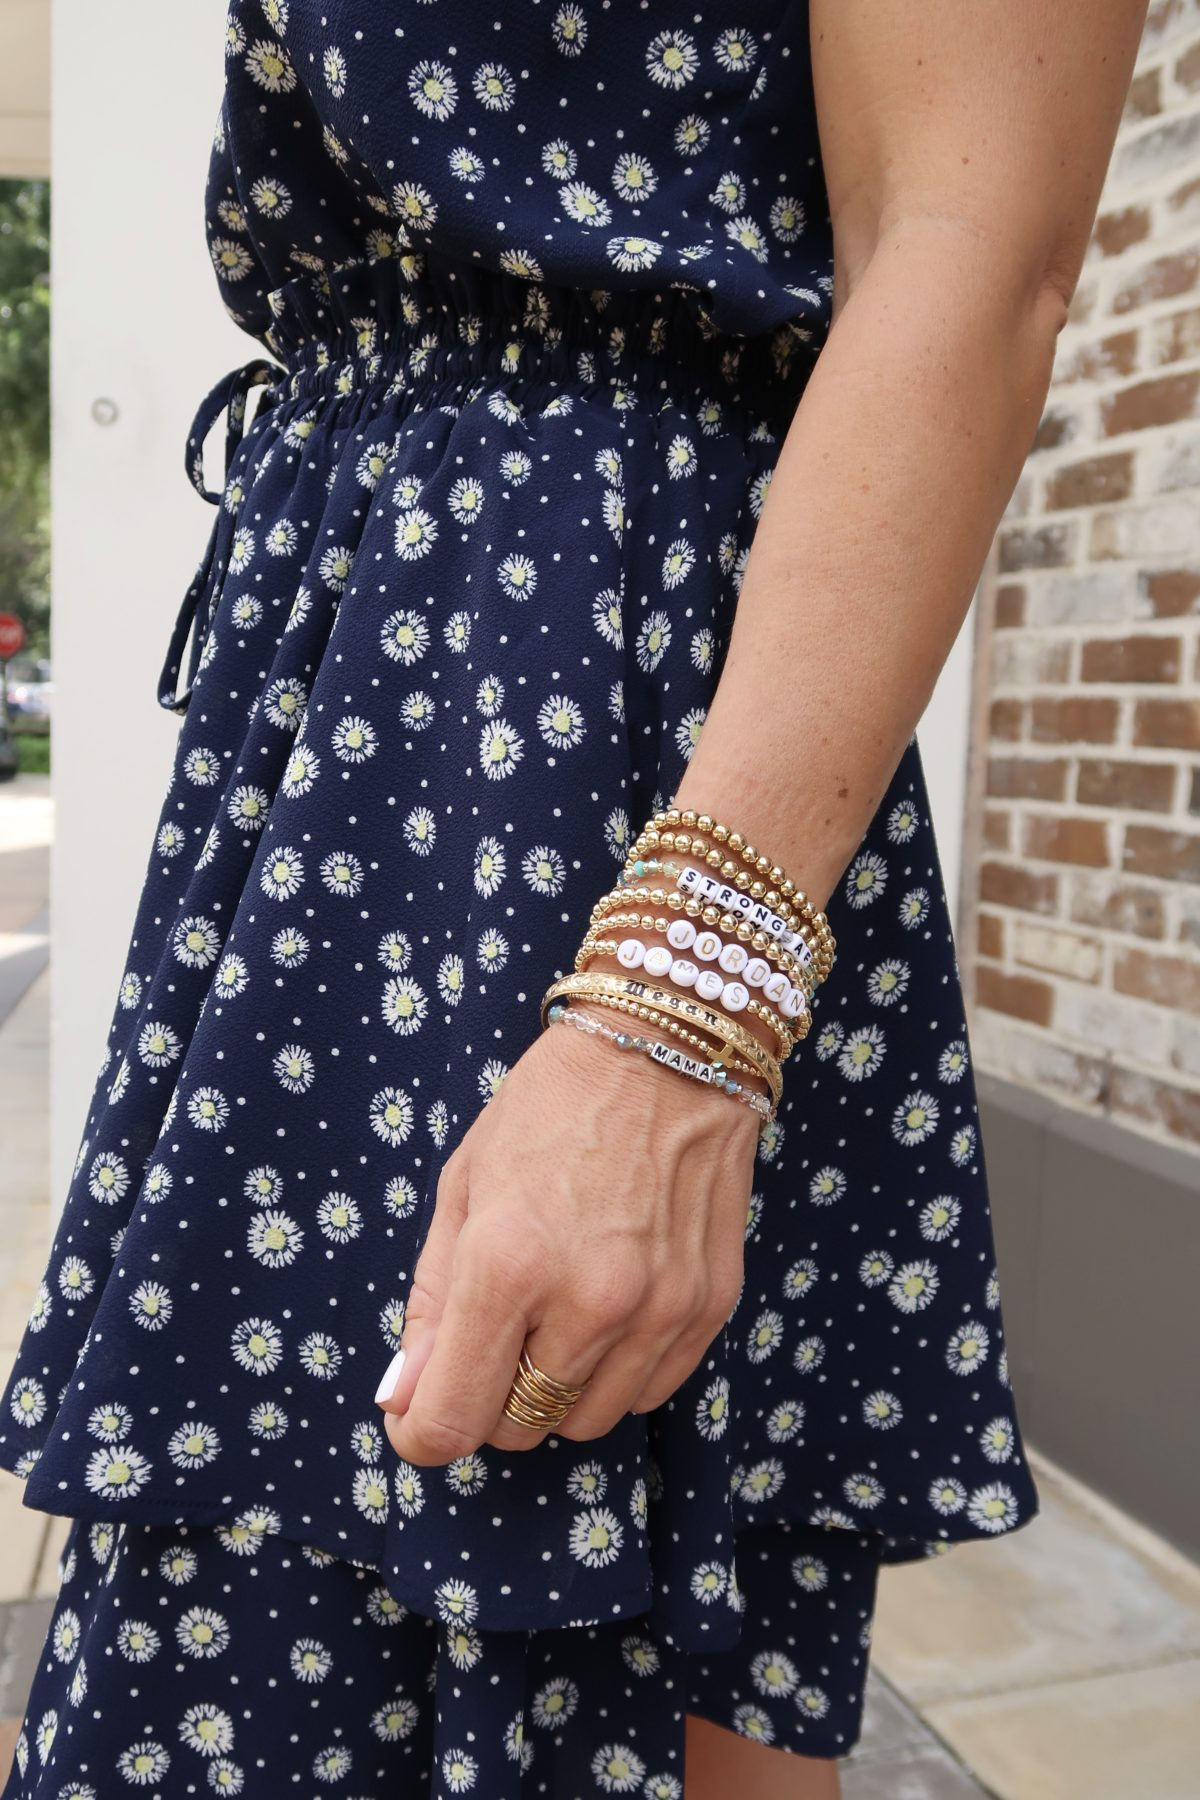 New Summer Styles, Nordstrom and Gibson, Daisy Print Top, Daisy Print Skirt , Beaded Bracelets